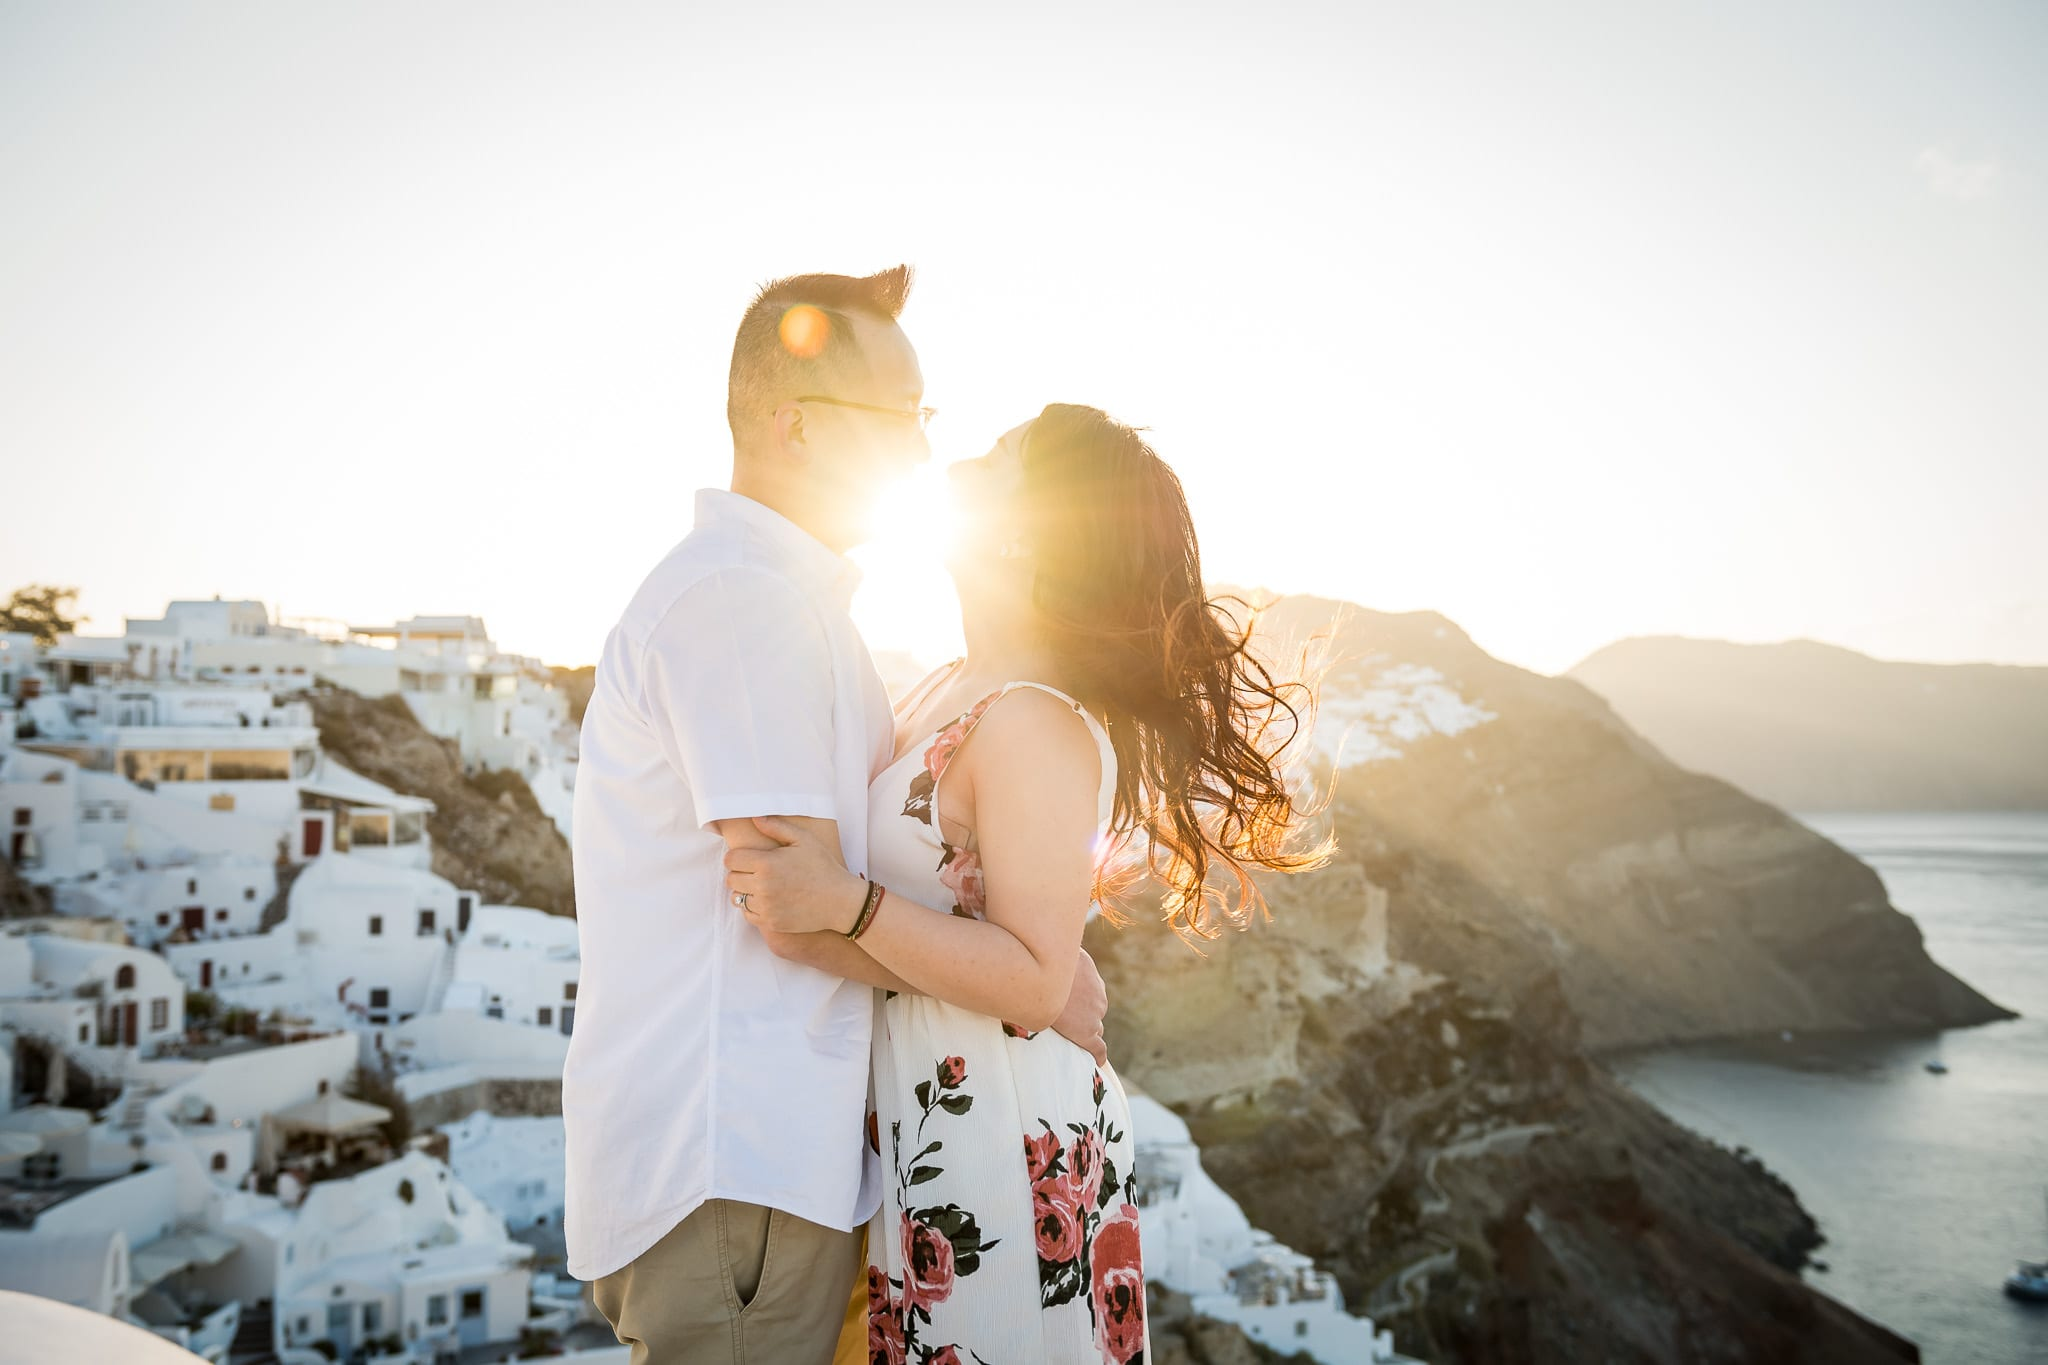 Sunrise light flare right between the kissing lips of this honeymooning couple overlooking the cliffs of Oia on the greek island of Santorini